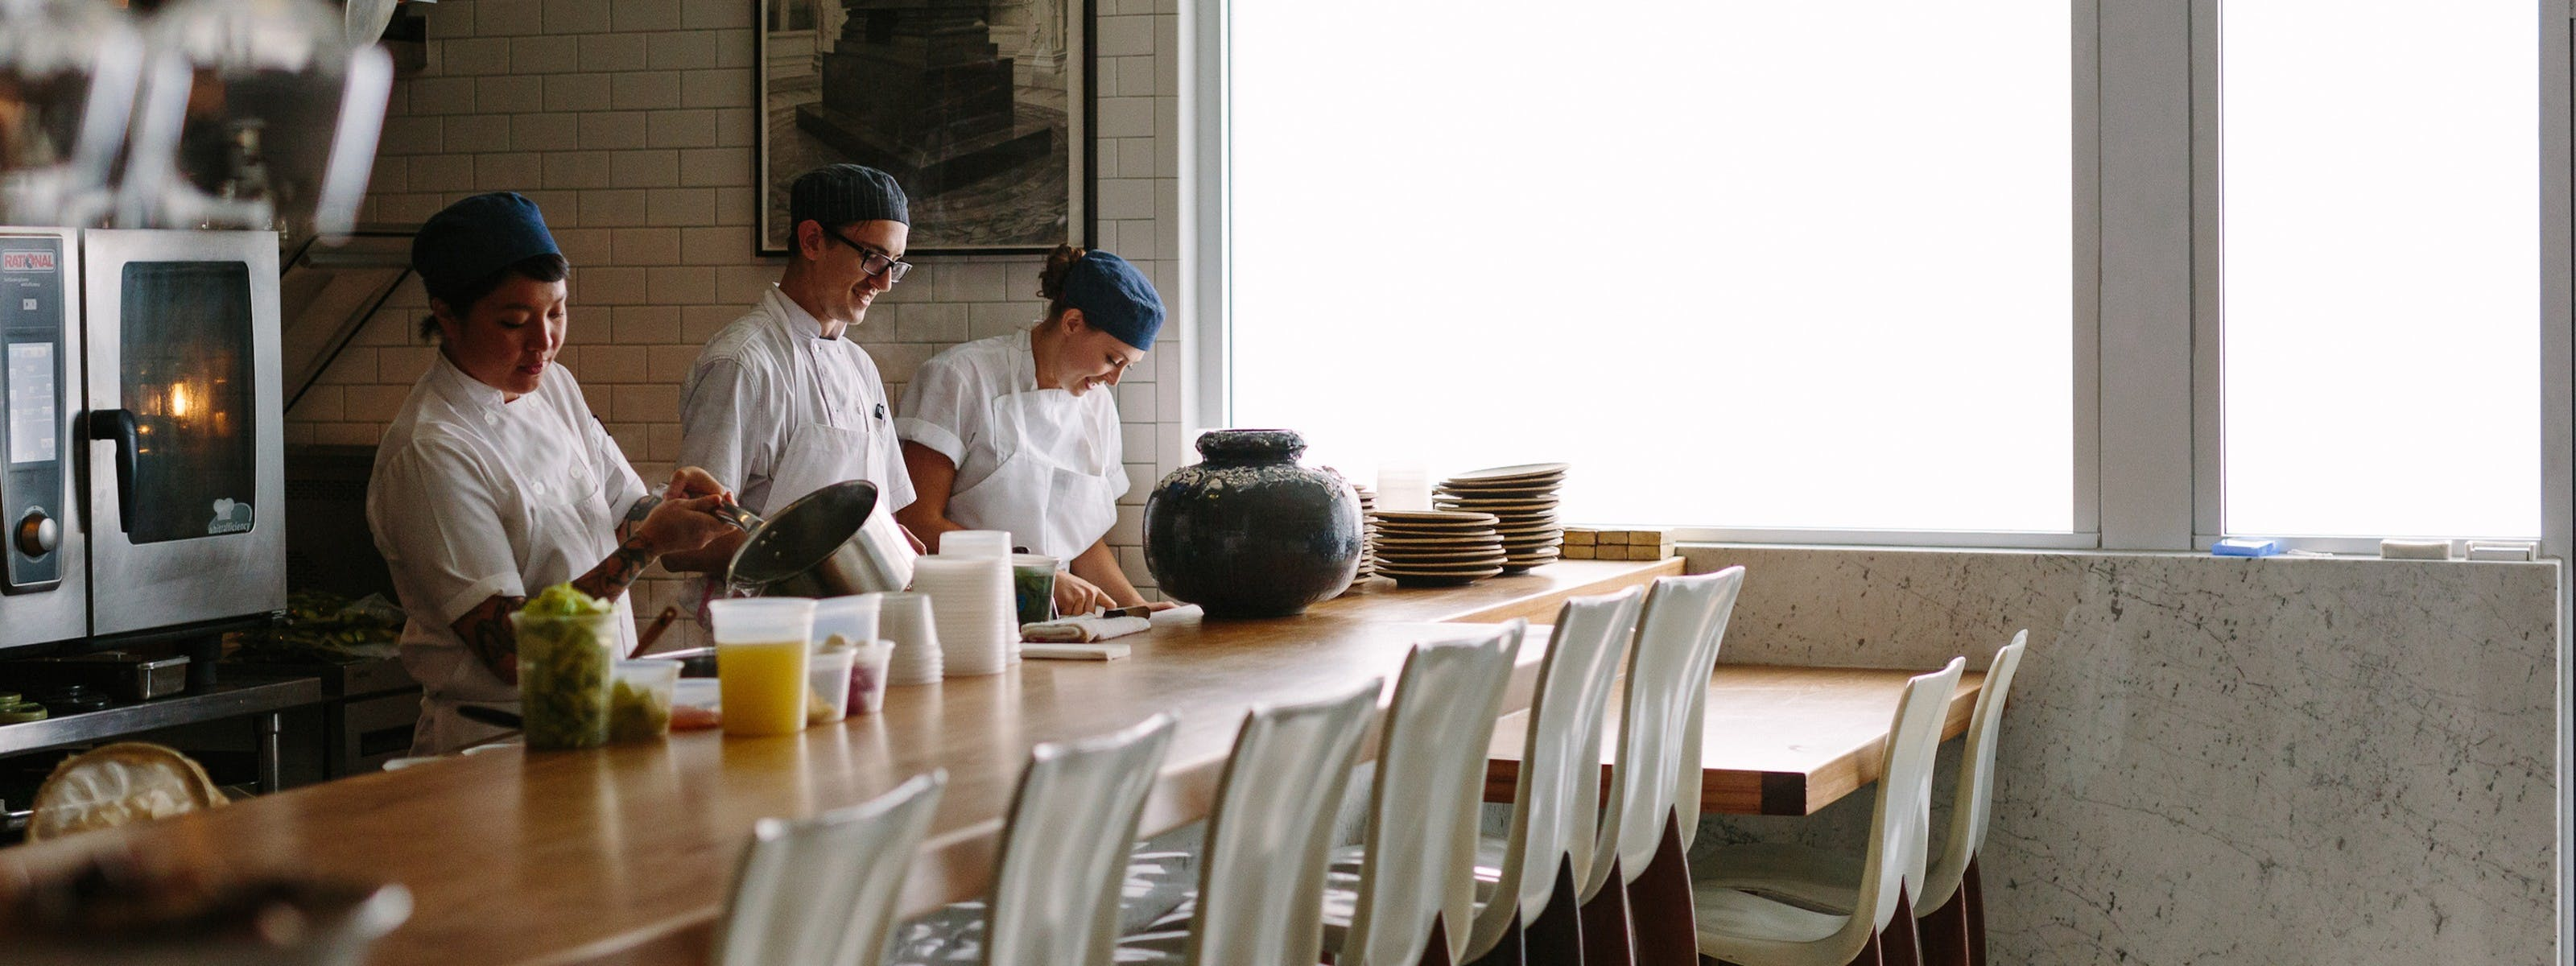 14 LA Restaurant Workers On Reopening During COVID - Los Angeles - The Infatuation